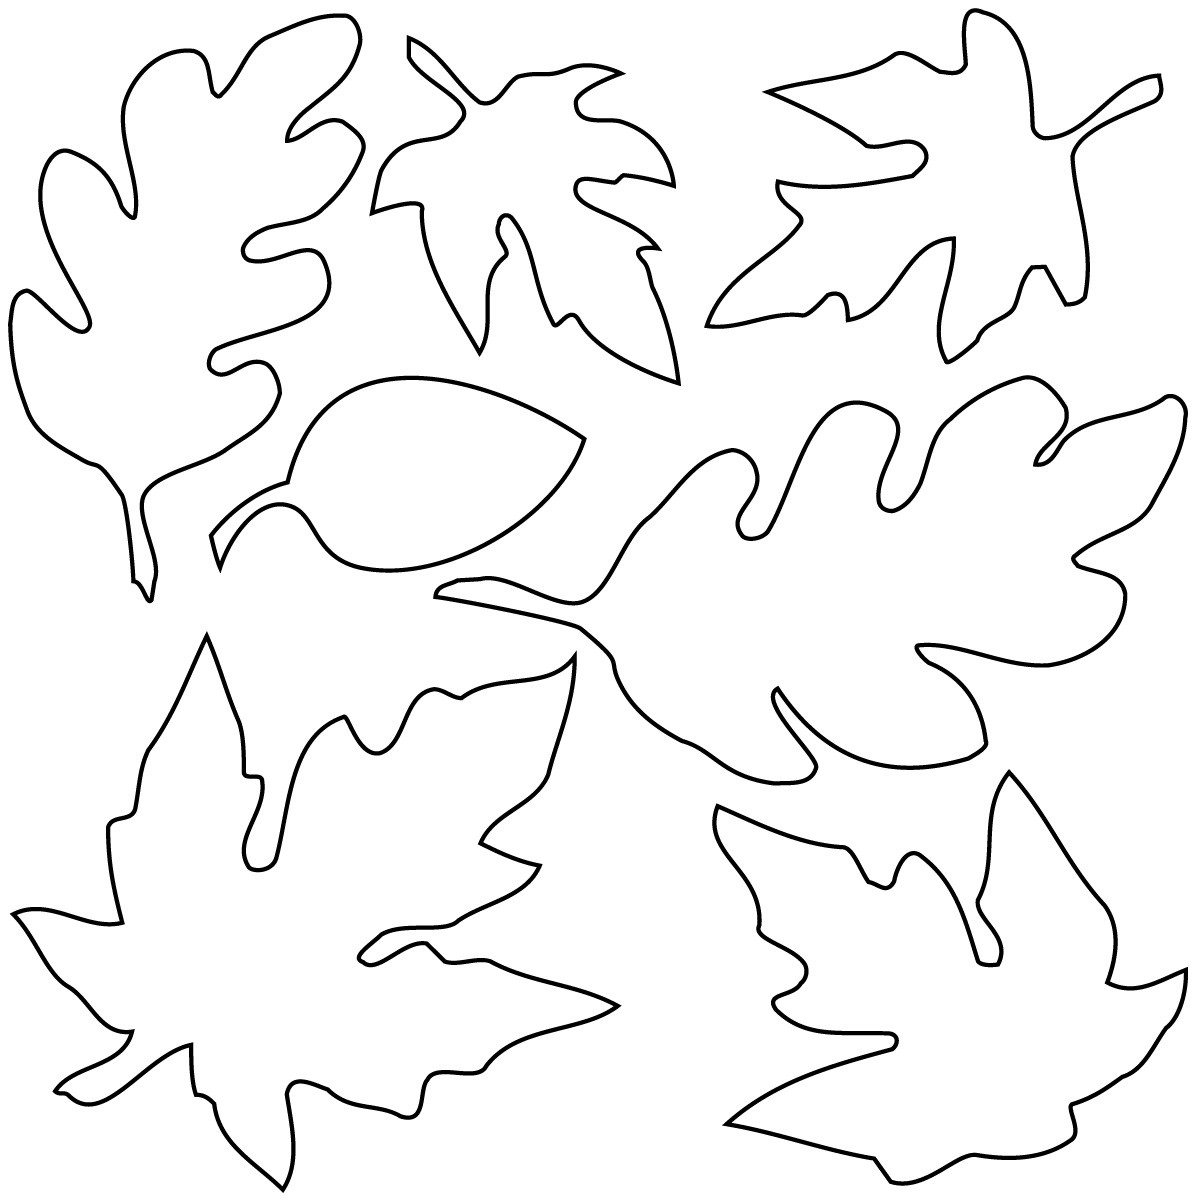 Oak Leaf Clip Art Black And W - Leaves Clipart Black And White